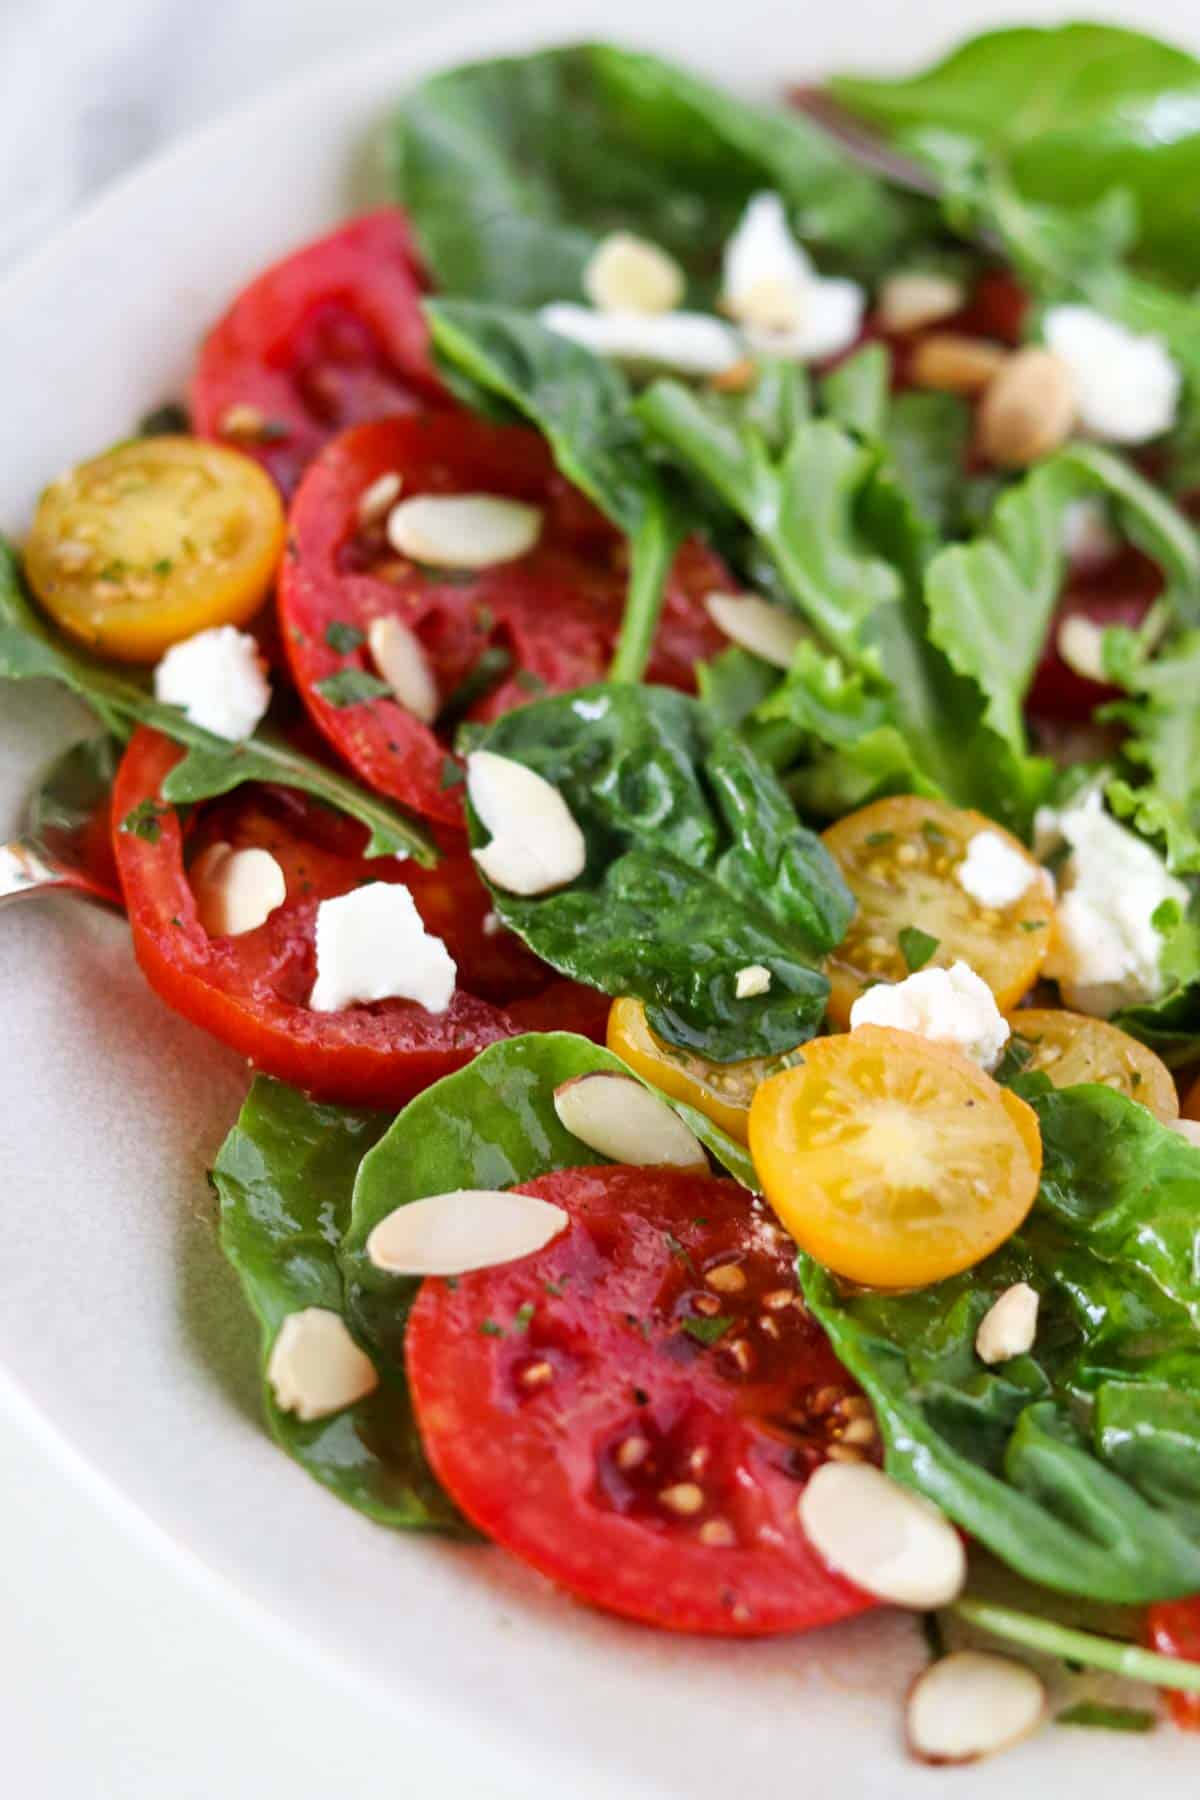 Tomato and goat cheese salad on a white plate.